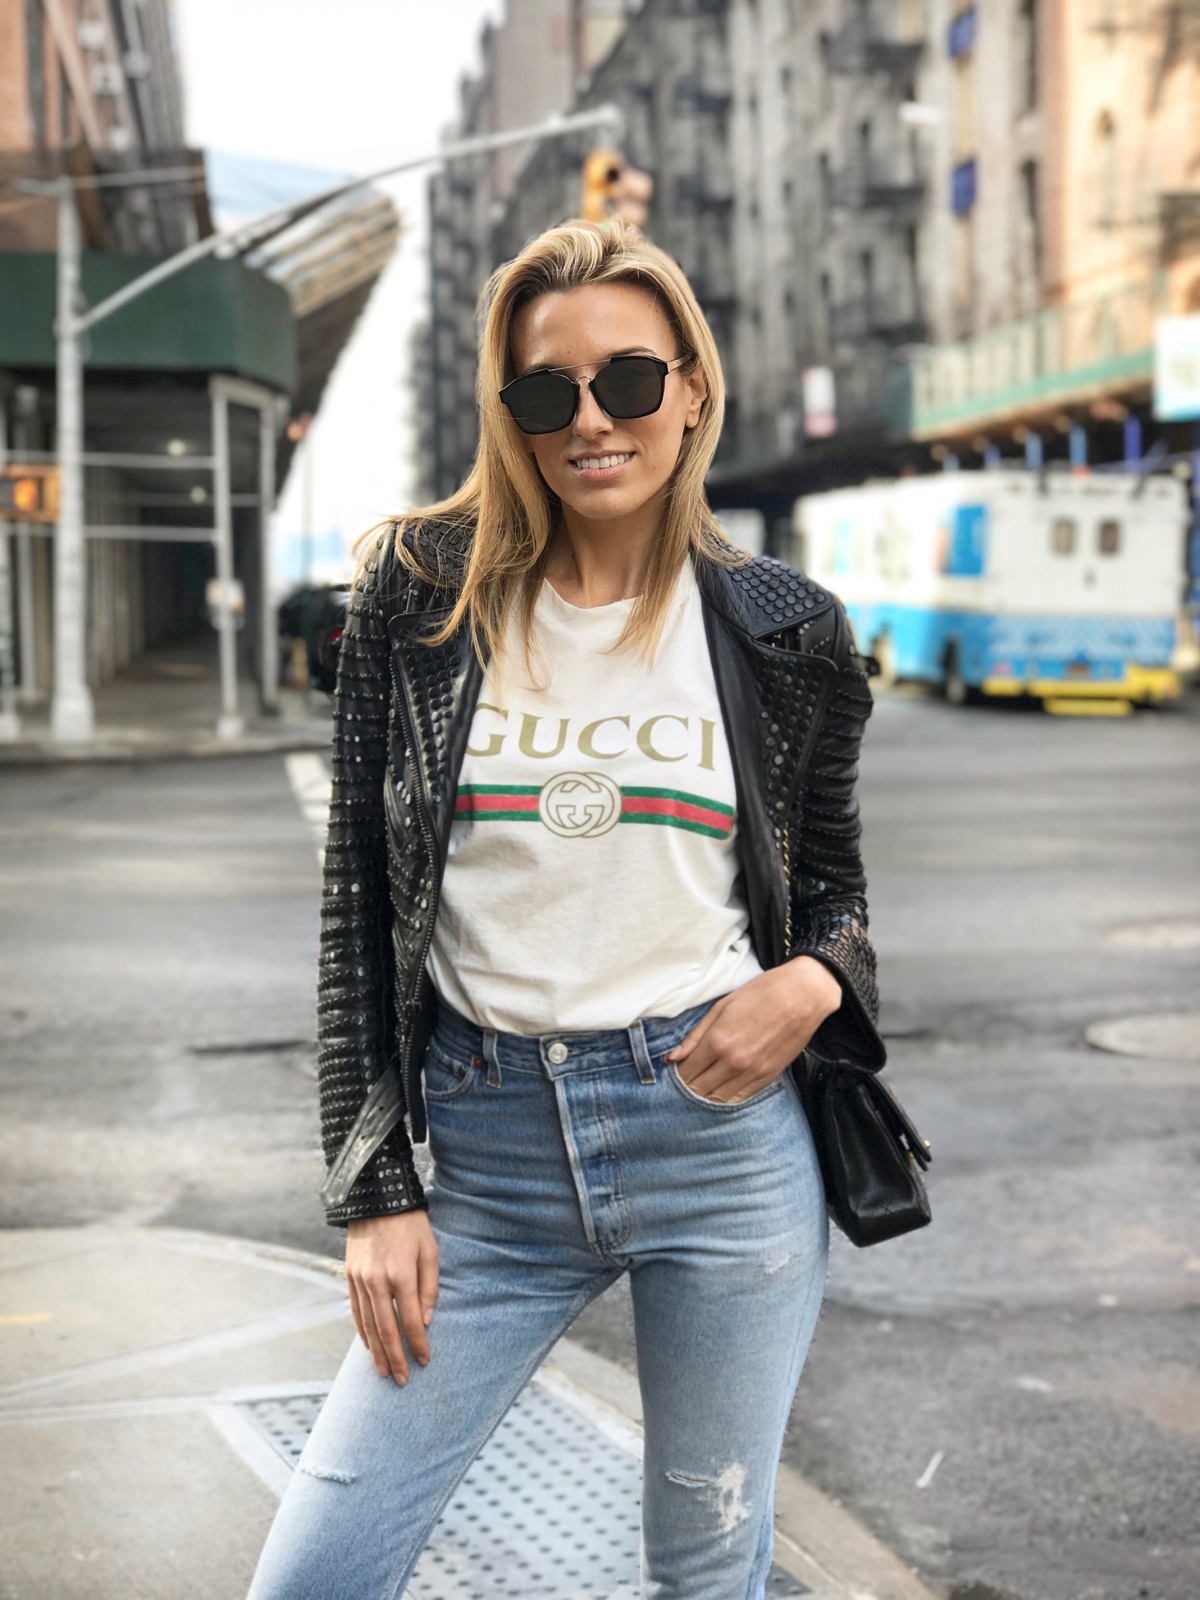 Gucci Logo tee, Gucci t shirt, Studded leather jacket, dior sunglasses, levis